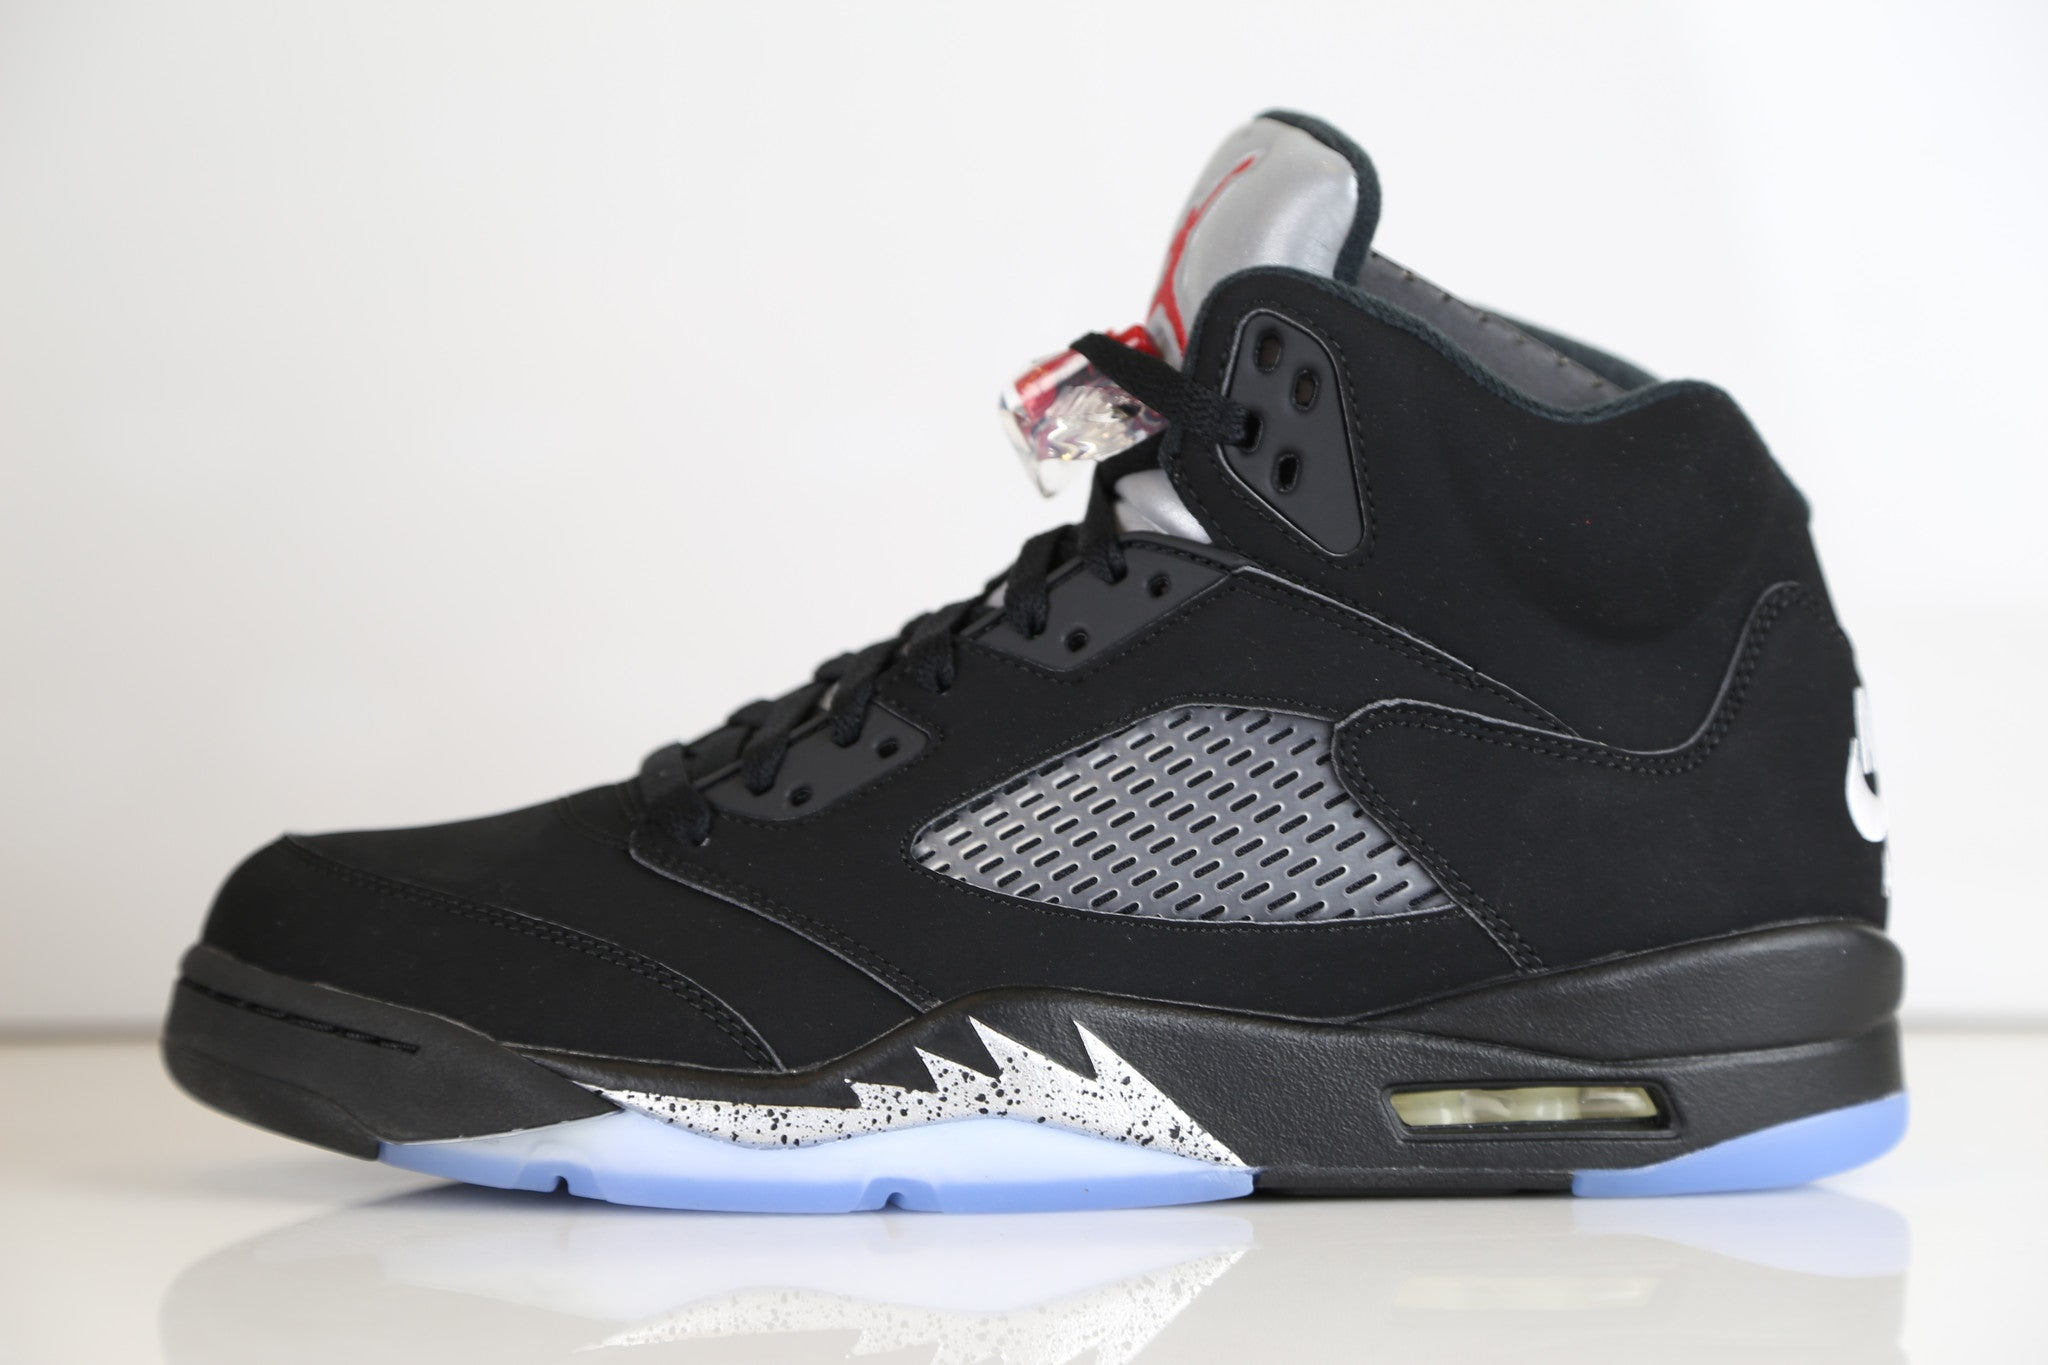 buy online 3f6ae e04d3 Nike Air Jordan Retro 5 OG 2016 Nike Air Black Metallic ...